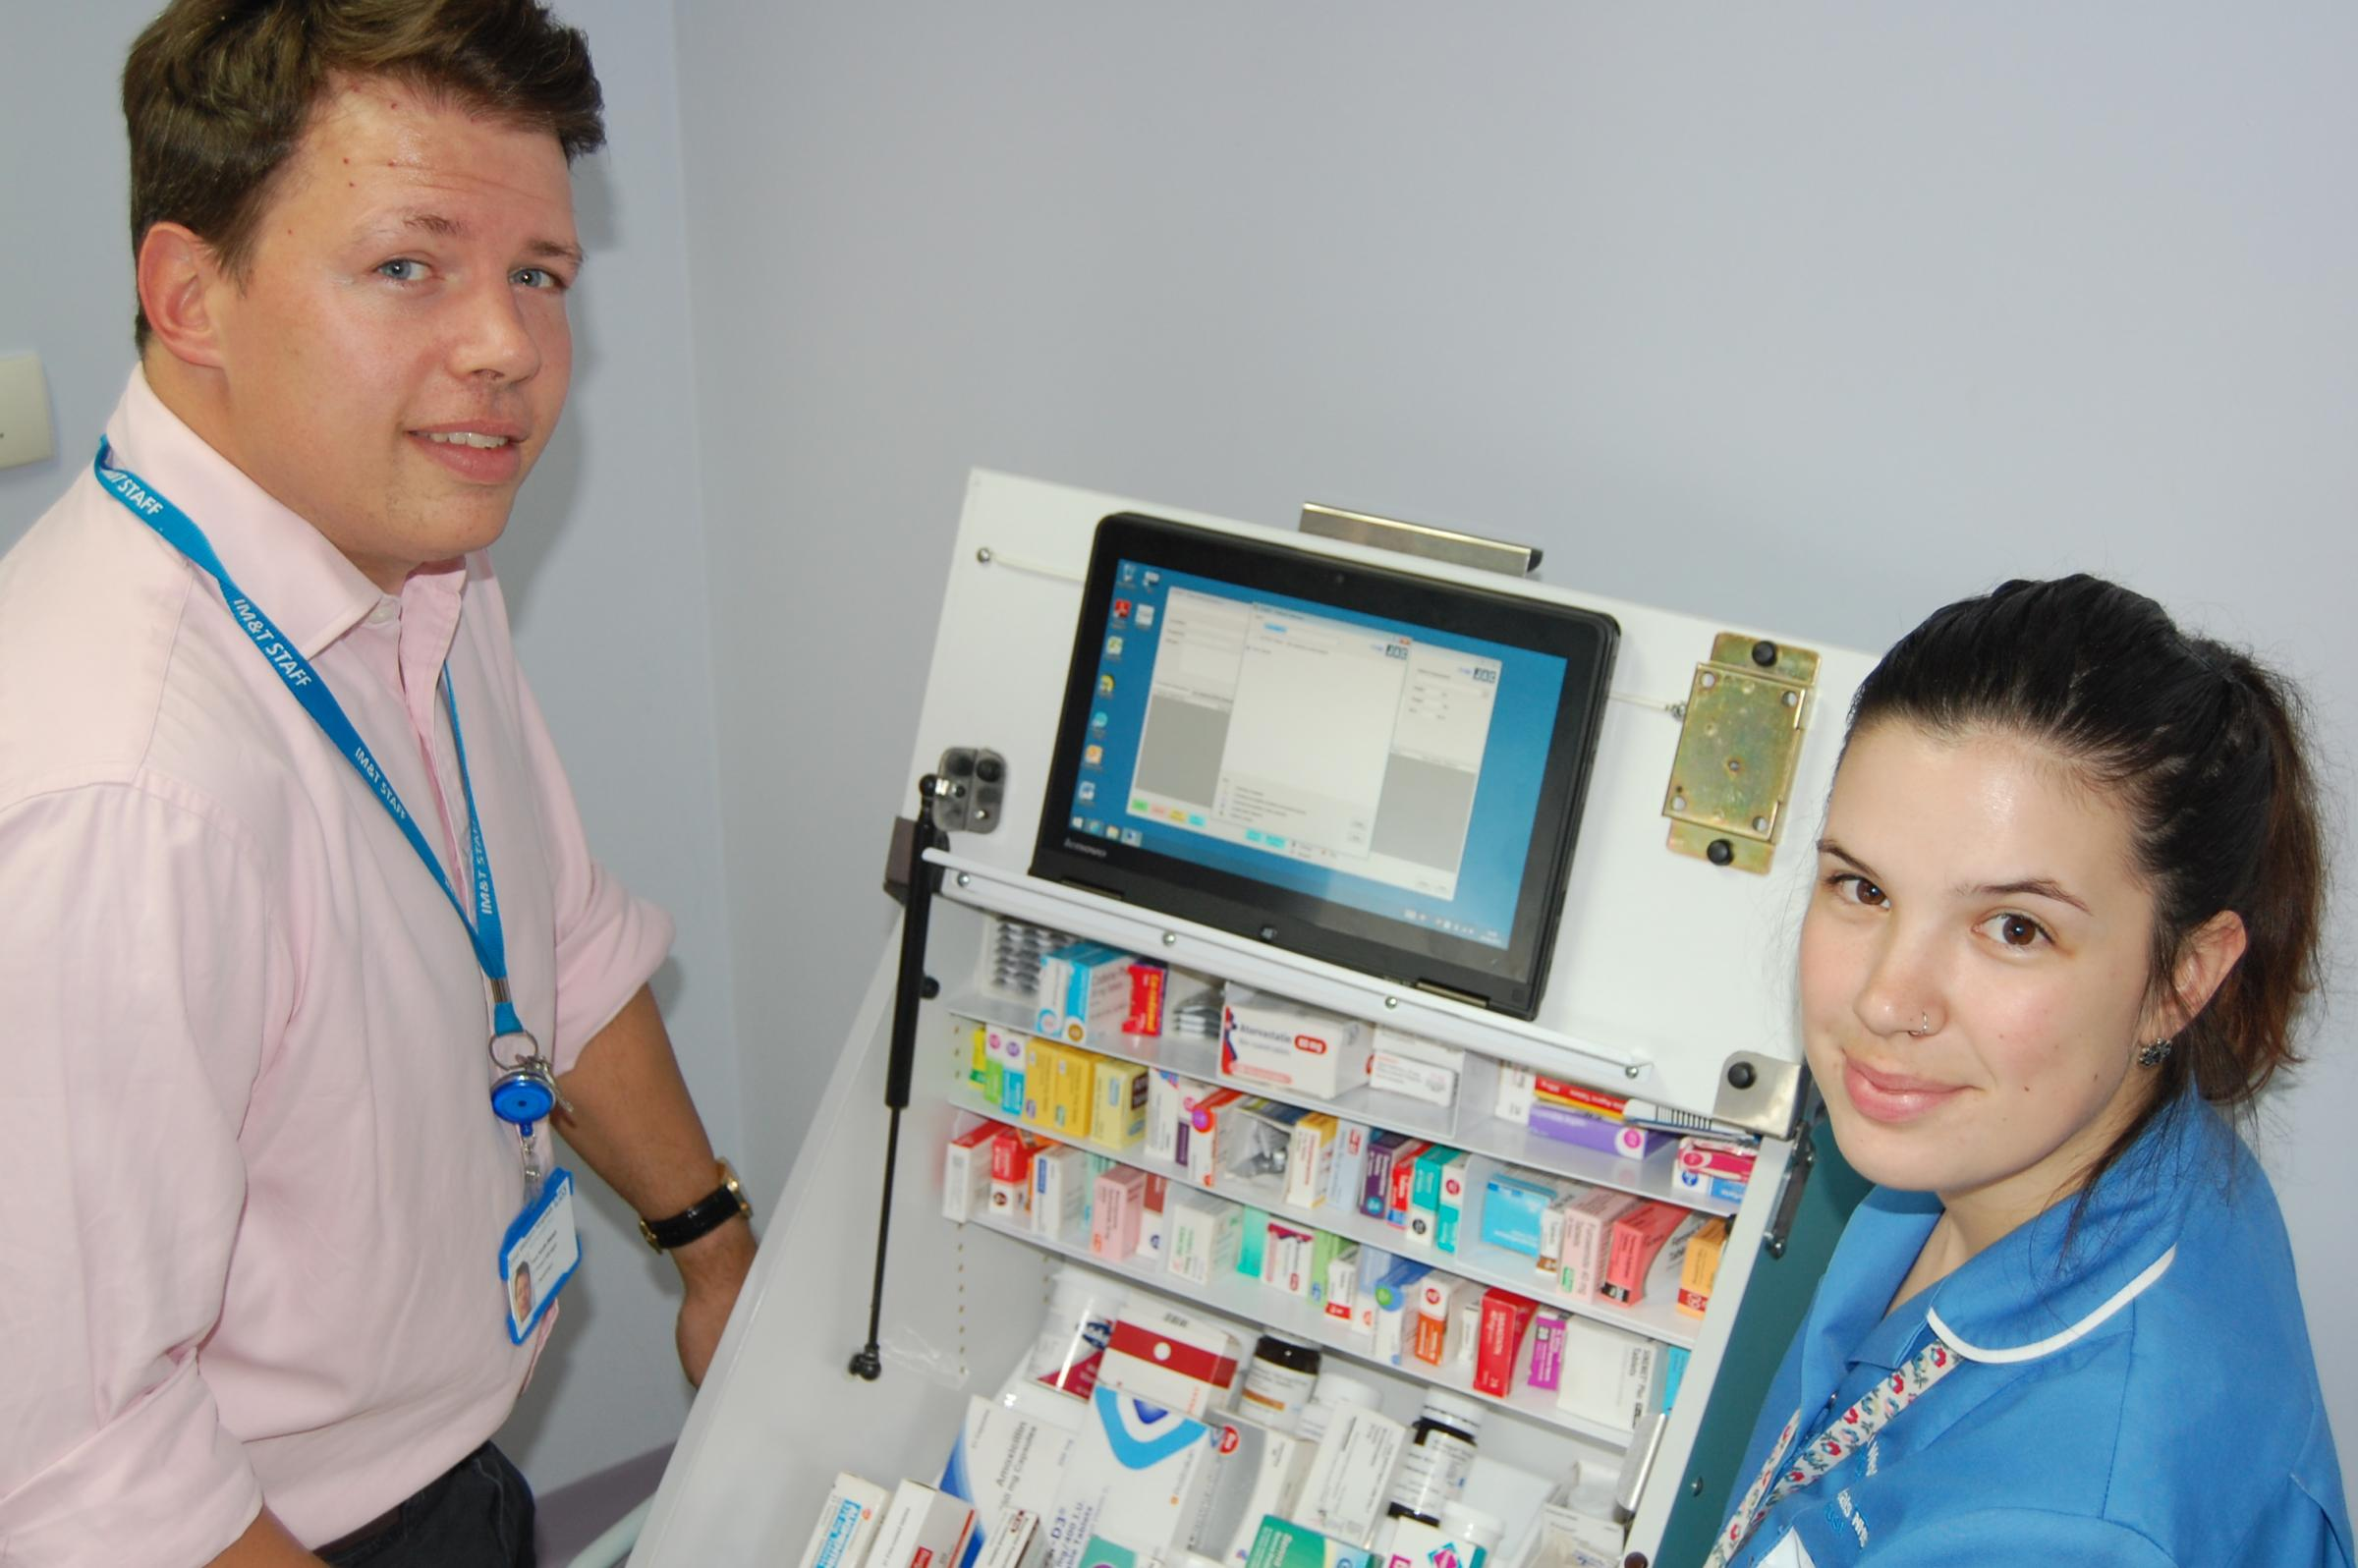 Tom Keith-Welsh, Great Western Hospitals NHS Foundation Trust's EPMA Project Manager with Falcon Ward Staff Nurse Sonia Soares, next to a medicine trolley and an EPMA portable computer